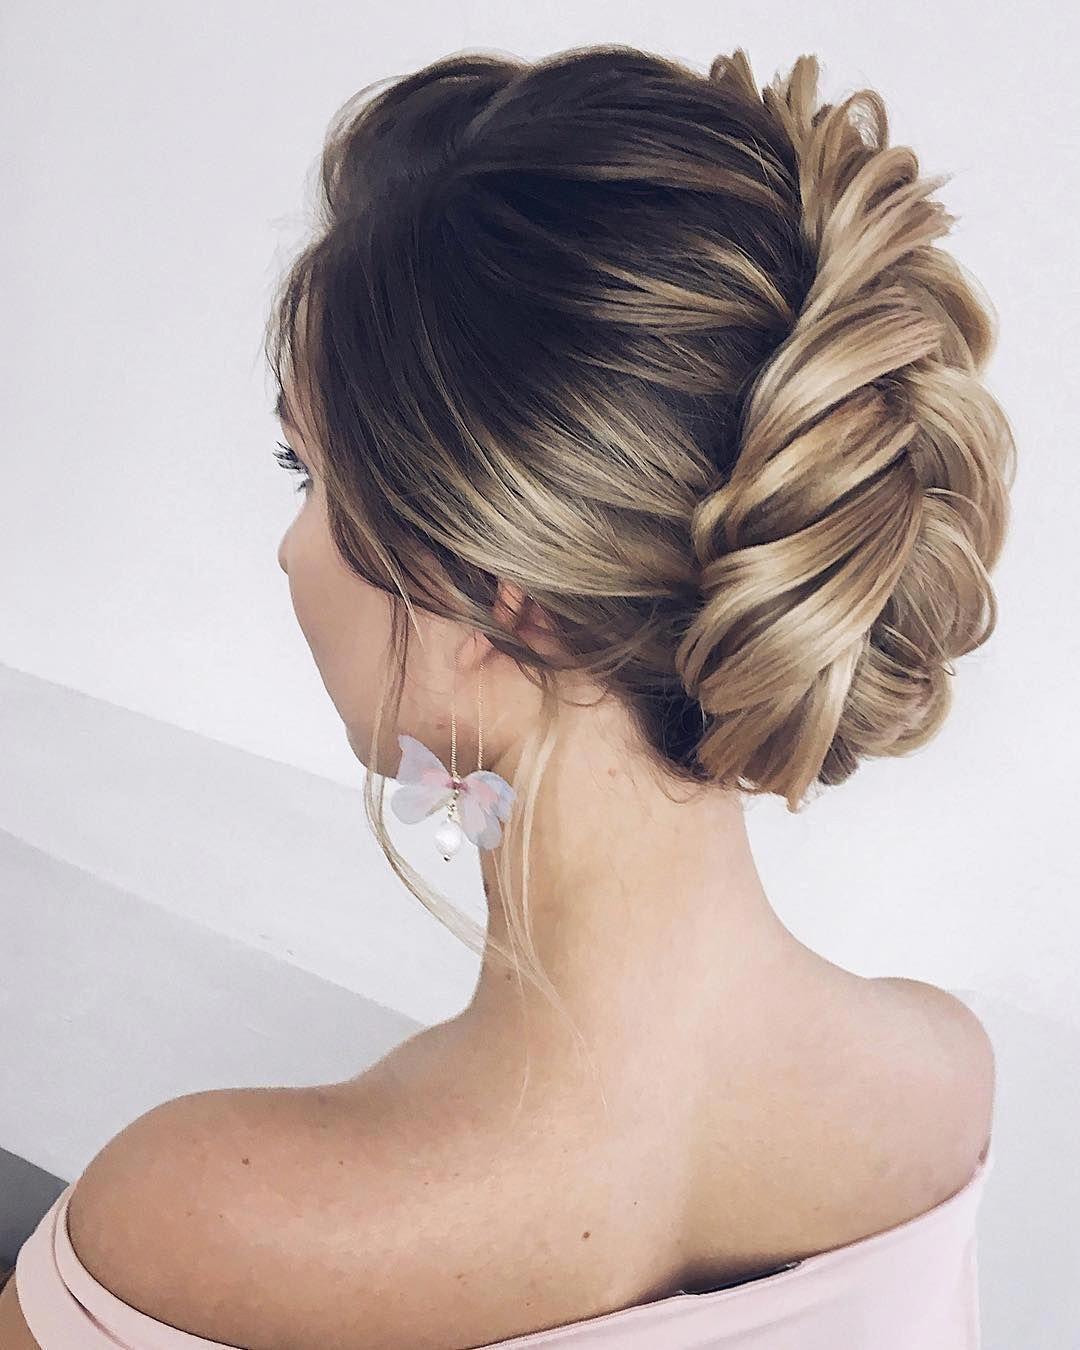 "Textured wedding updo hairstyle ,messy updo wedding hairstyles ,chignon , messy updo hairstyles ,bridal updo <a class=""pintag"" href=""/explore/wedding/"" title=""#wedding explore Pinterest"">#wedding</a> <a class=""pintag"" href=""/explore/weddinghair/"" title=""#weddinghair explore Pinterest"">#weddinghair</a> <a class=""pintag"" href=""/explore/weddinghairstyles/"" title=""#weddinghairstyles explore Pinterest"">#weddinghairstyles</a> <a class=""pintag"" href=""/explore/hairstyles/"" title=""#hairstyles explore Pinterest"">#hairstyles</a> <a class=""pintag"" href=""/explore/updo/"" title=""#updo explore Pinterest"">#updo</a> <a class=""pintag"" href=""/explore/promhairstyle/"" title=""#promhairstyle explore Pinterest"">#promhairstyle</a> <a class=""pintag"" href=""/explore/braidedhairstyles/"" title=""#braidedhairstyles explore Pinterest"">#braidedhairstyles</a><p><a href=""http://www.homeinteriordesign.org/2018/02/short-guide-to-interior-decoration.html"">Short guide to interior decoration</a></p>"